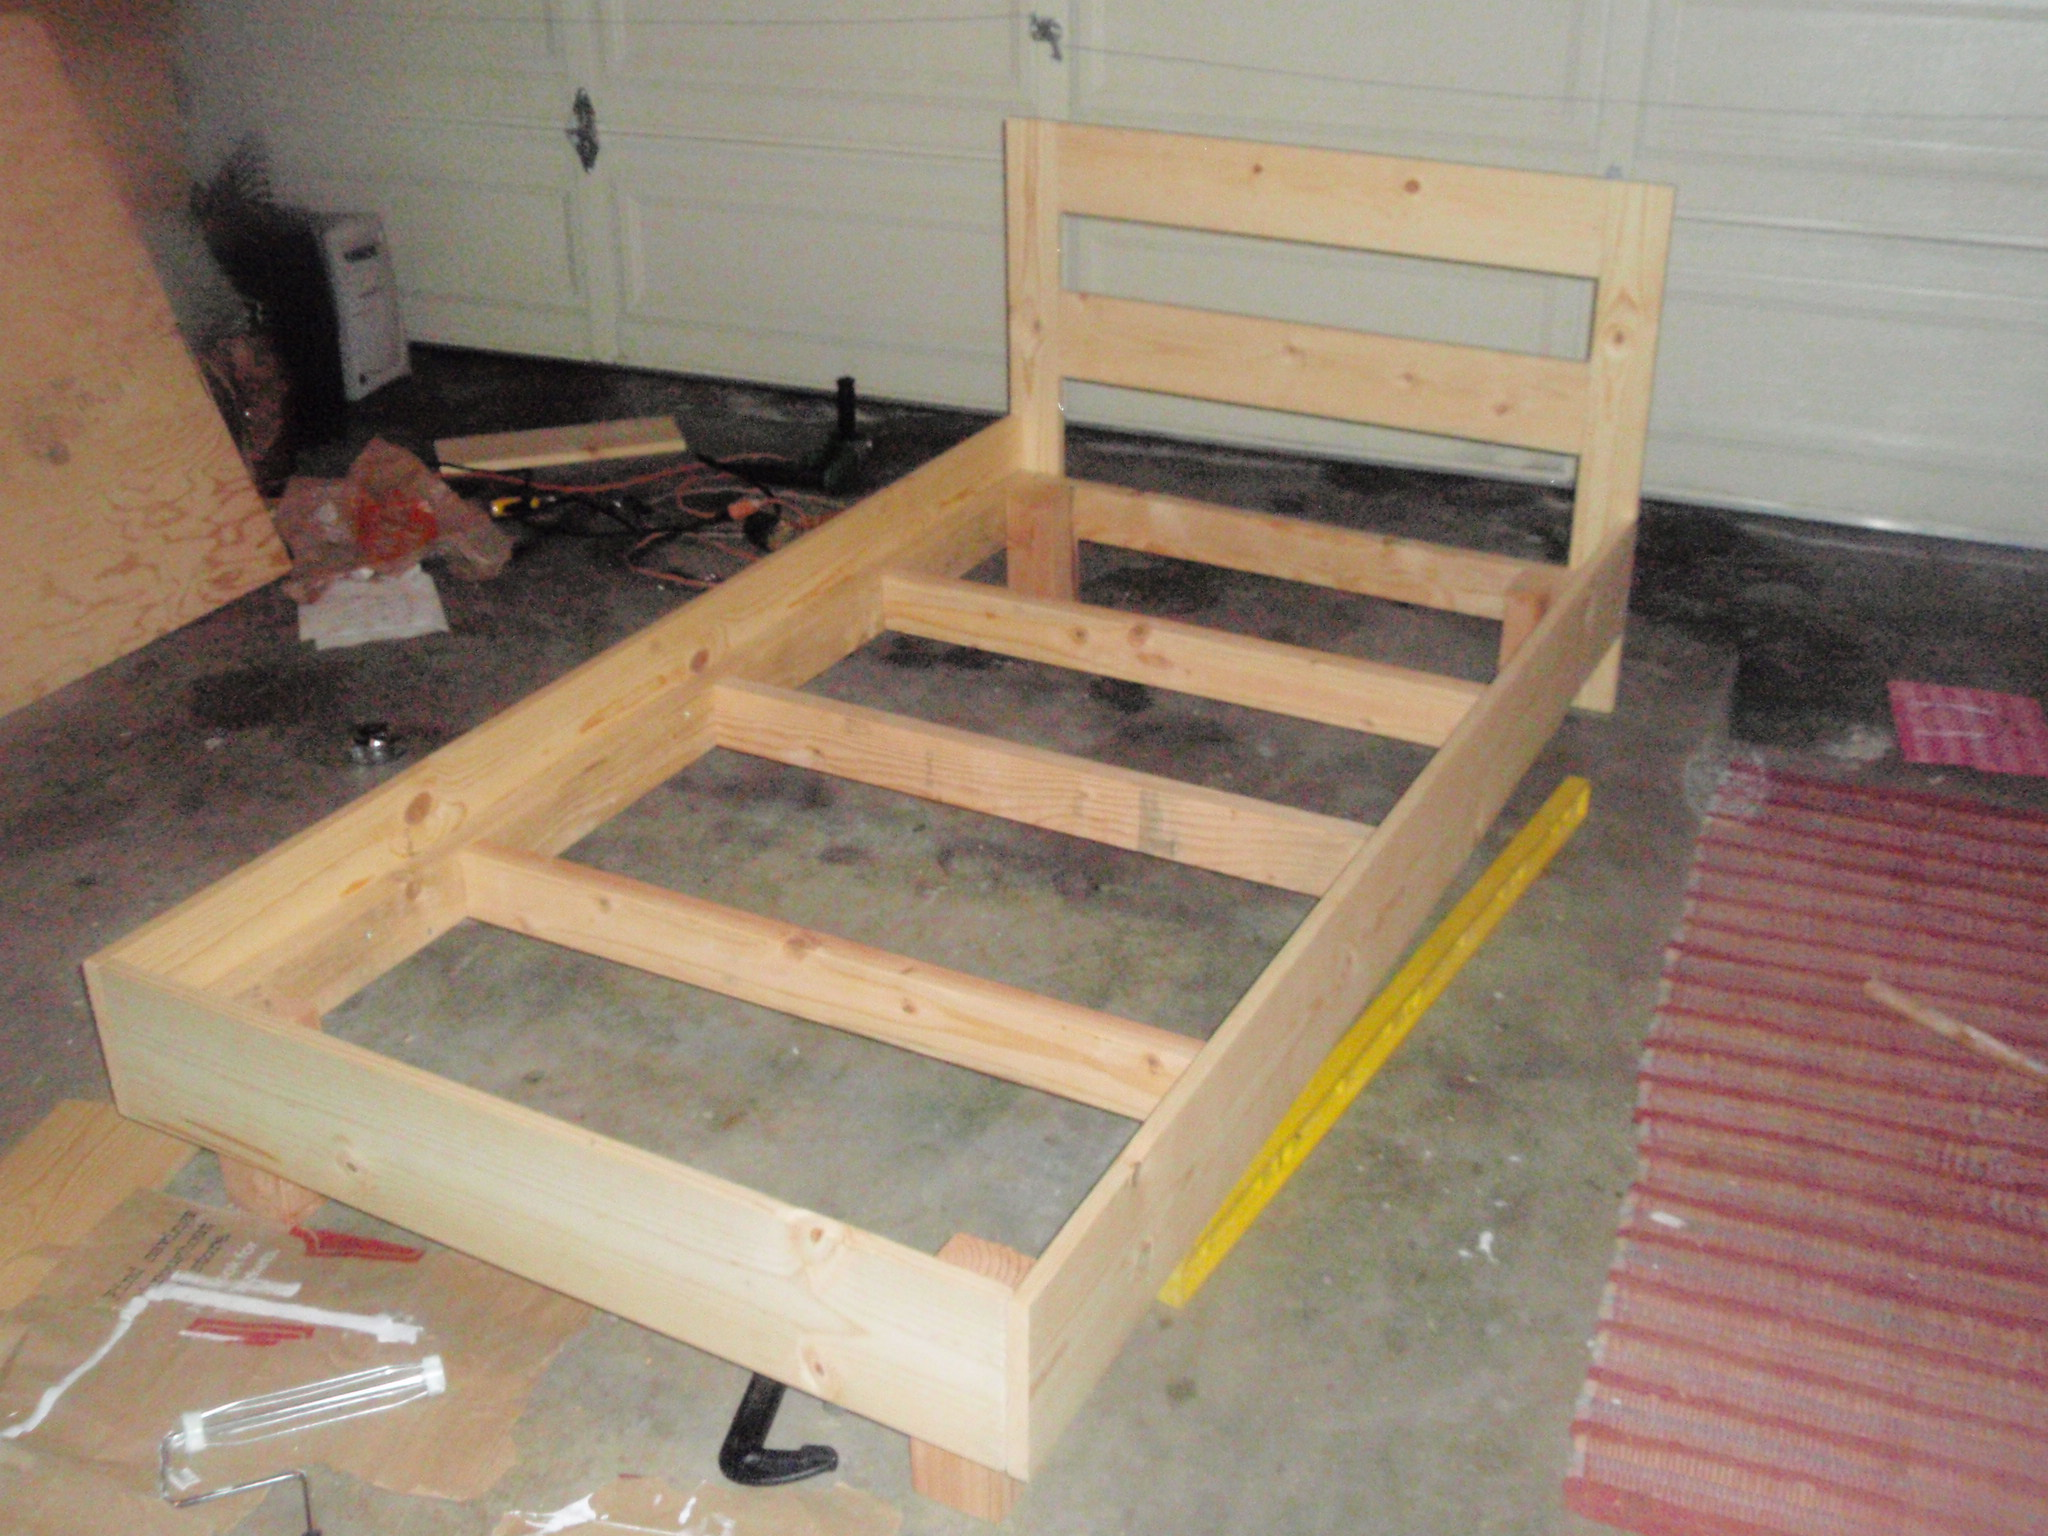 Building a platform bed frame with drawers discover woodworking projects - How to build a queen size bed frame with drawers ...